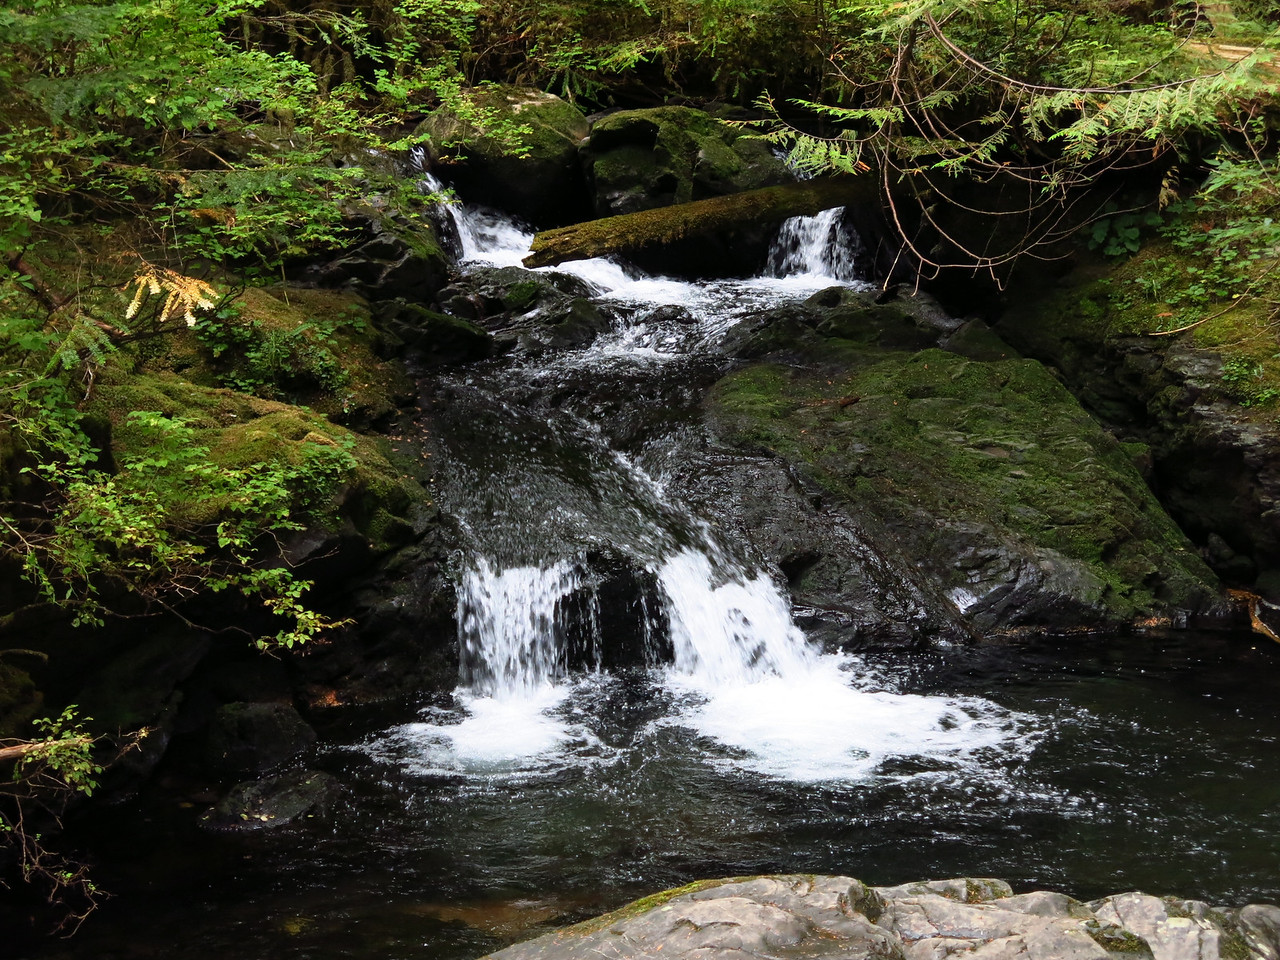 This is a telephoto view of the little water fall upstream from the bridge.